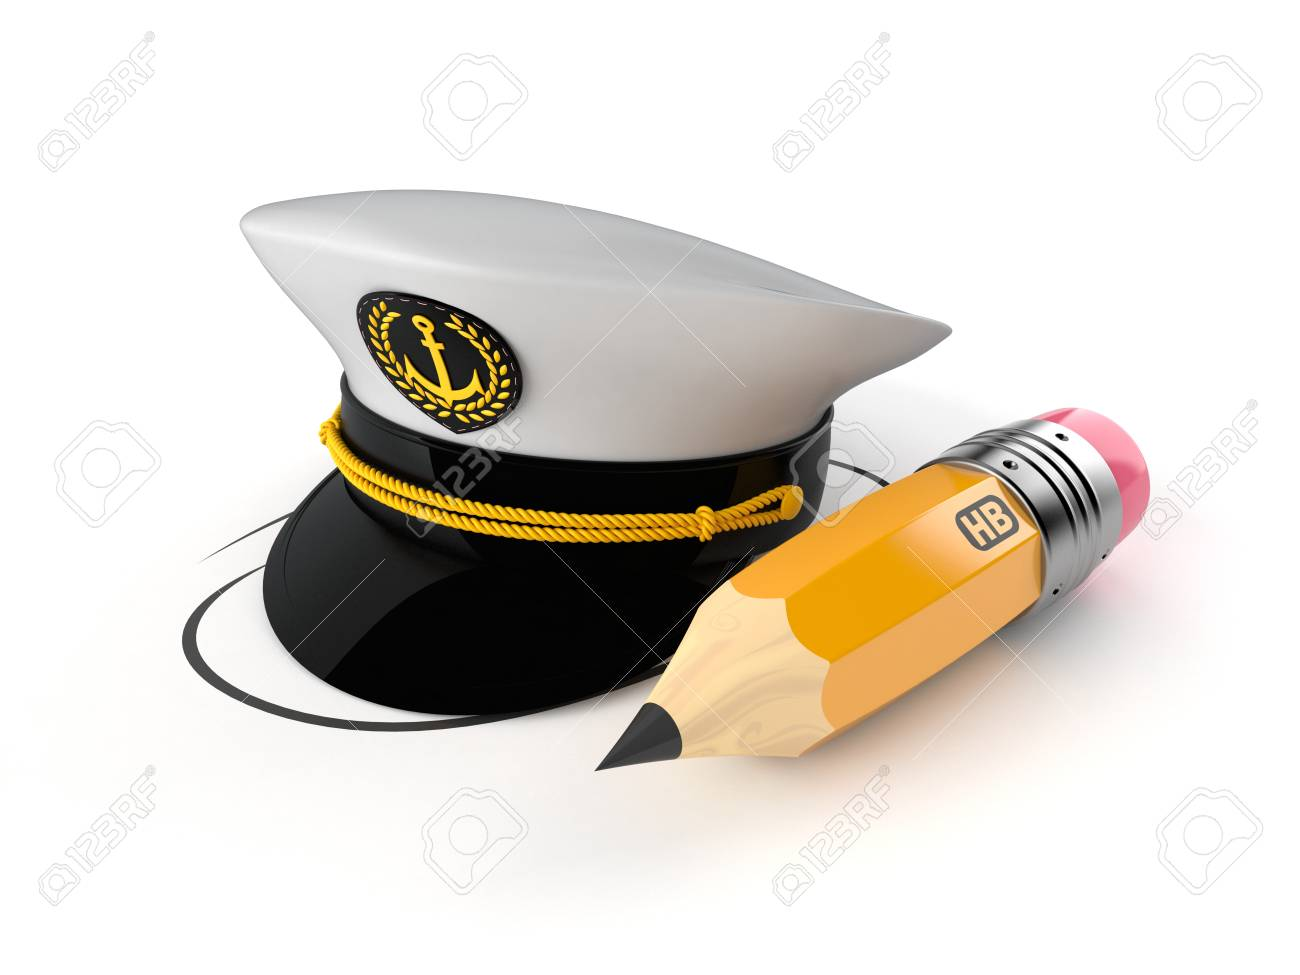 f279a1d8437 Captain s hat with pencil isolated on white background. 3d illustration  Stock Illustration - 110844550